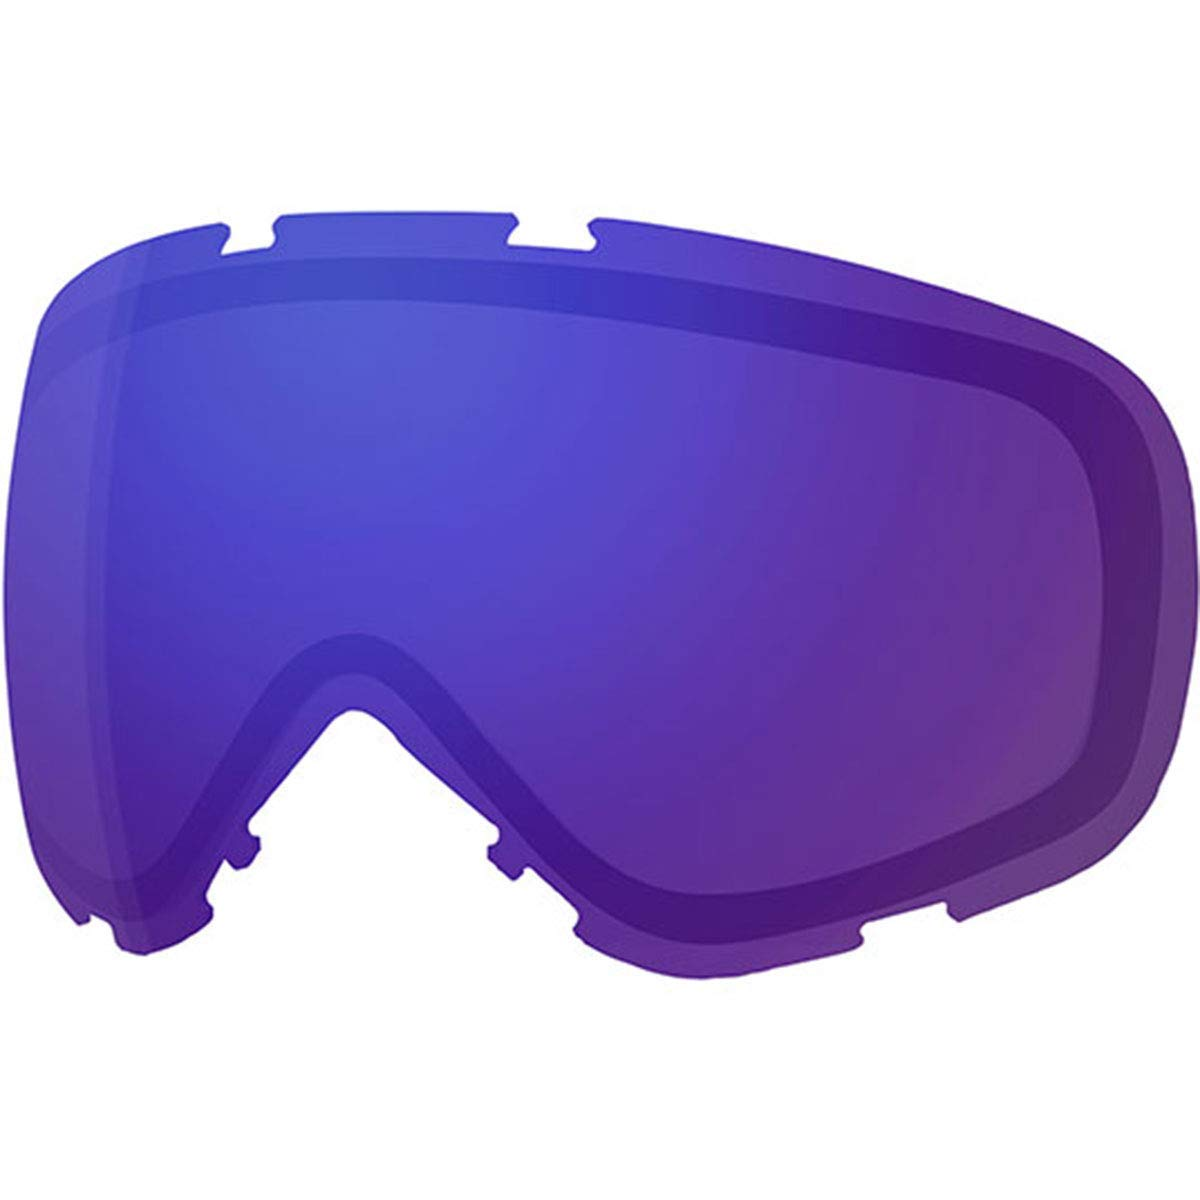 06add19c5143 Buy Smith Optics Prodigy Turbo Fan Goggle Replacement Lens ...